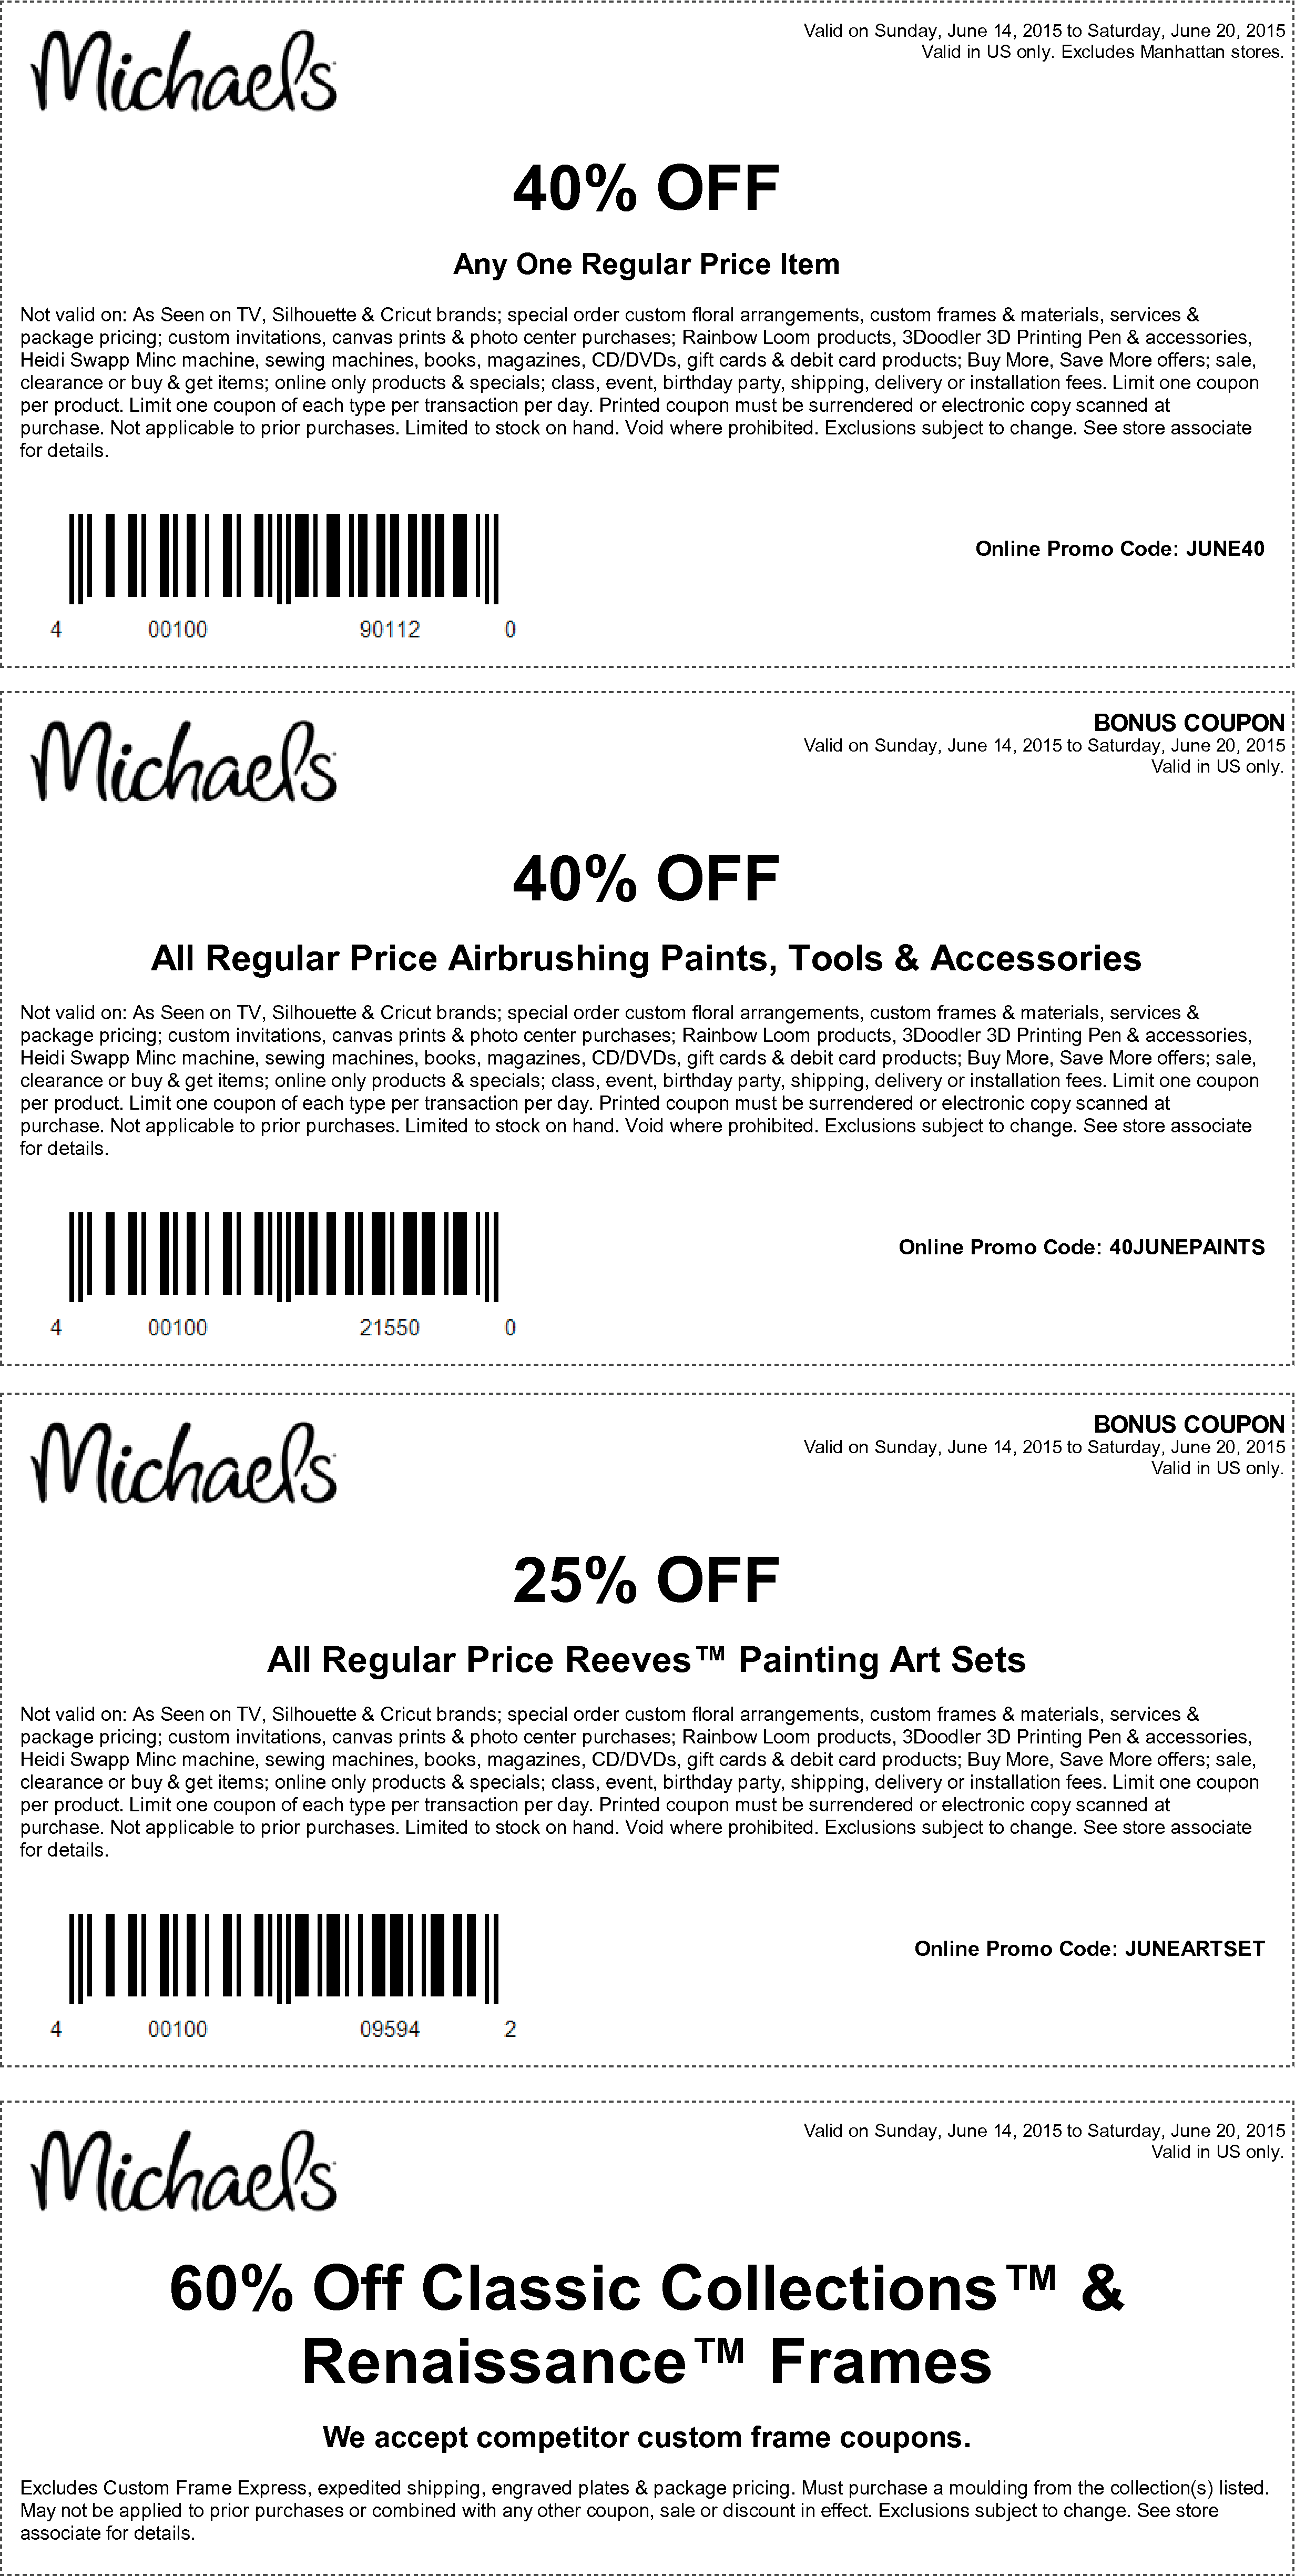 Michaels Coupon May 2017 40% off a single item & more at Michaels, or online via promo code JUNE40